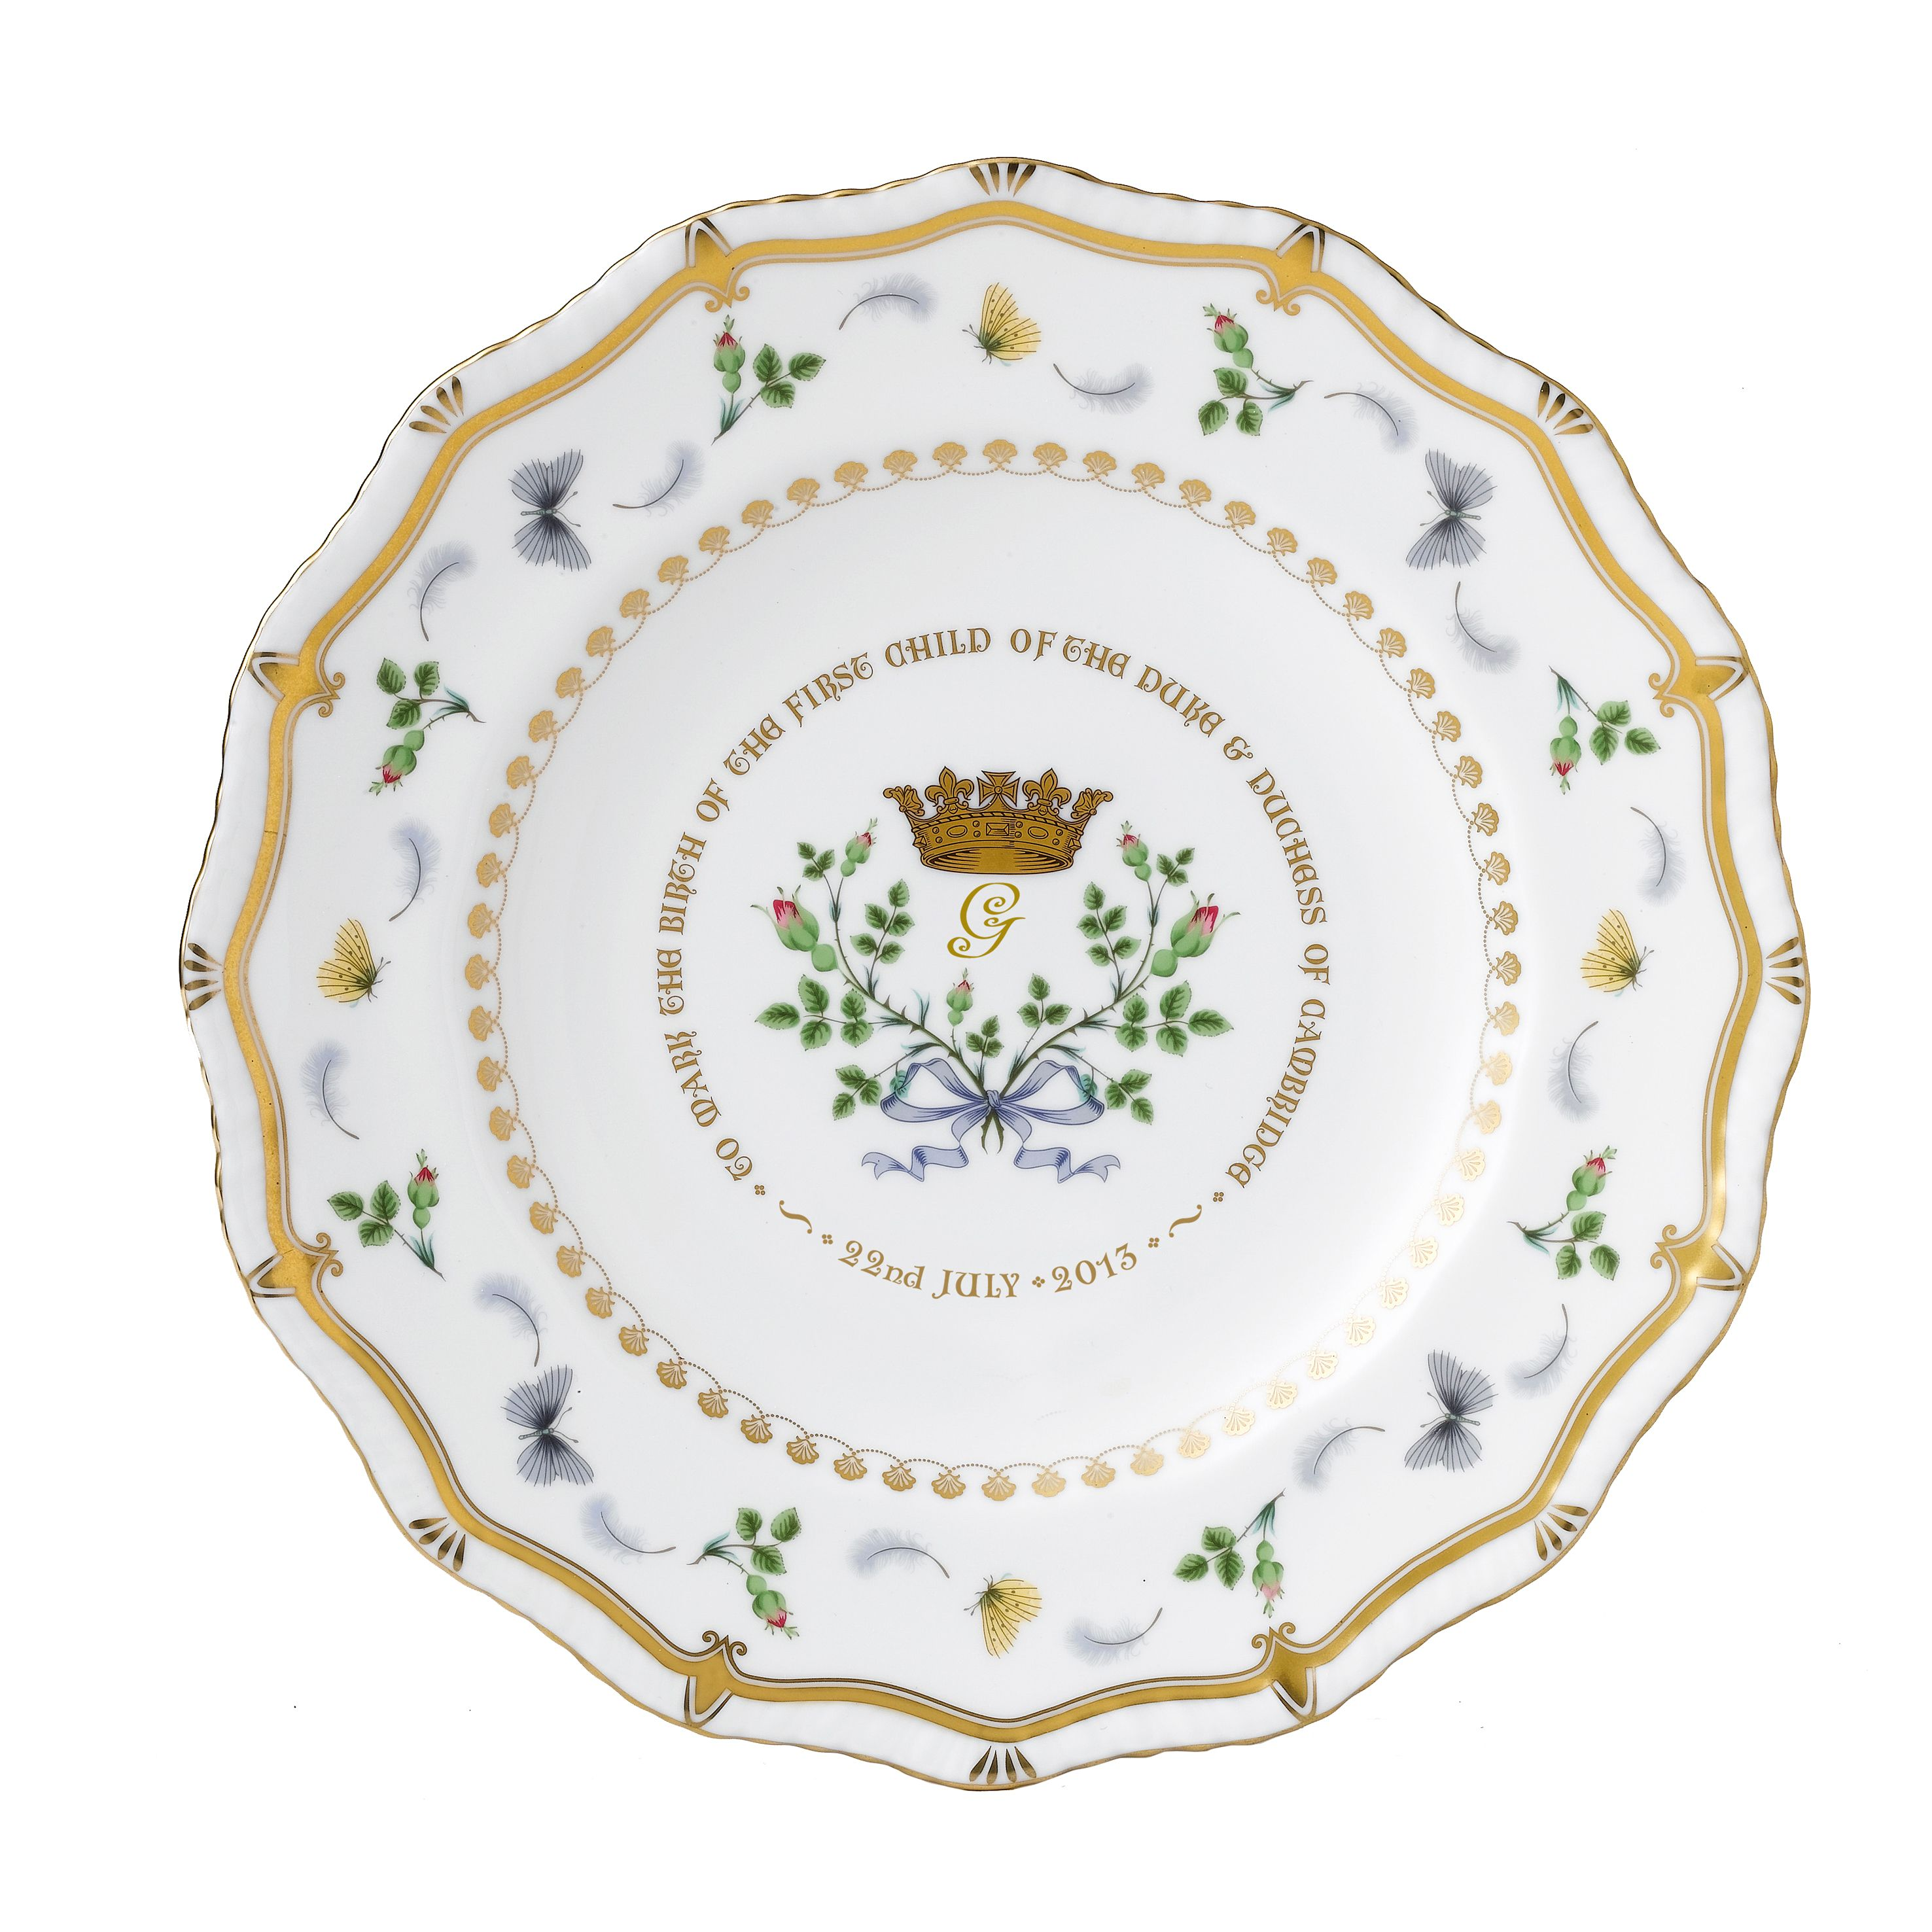 Image of Royal Crown Derby Gadroon plate limited edition